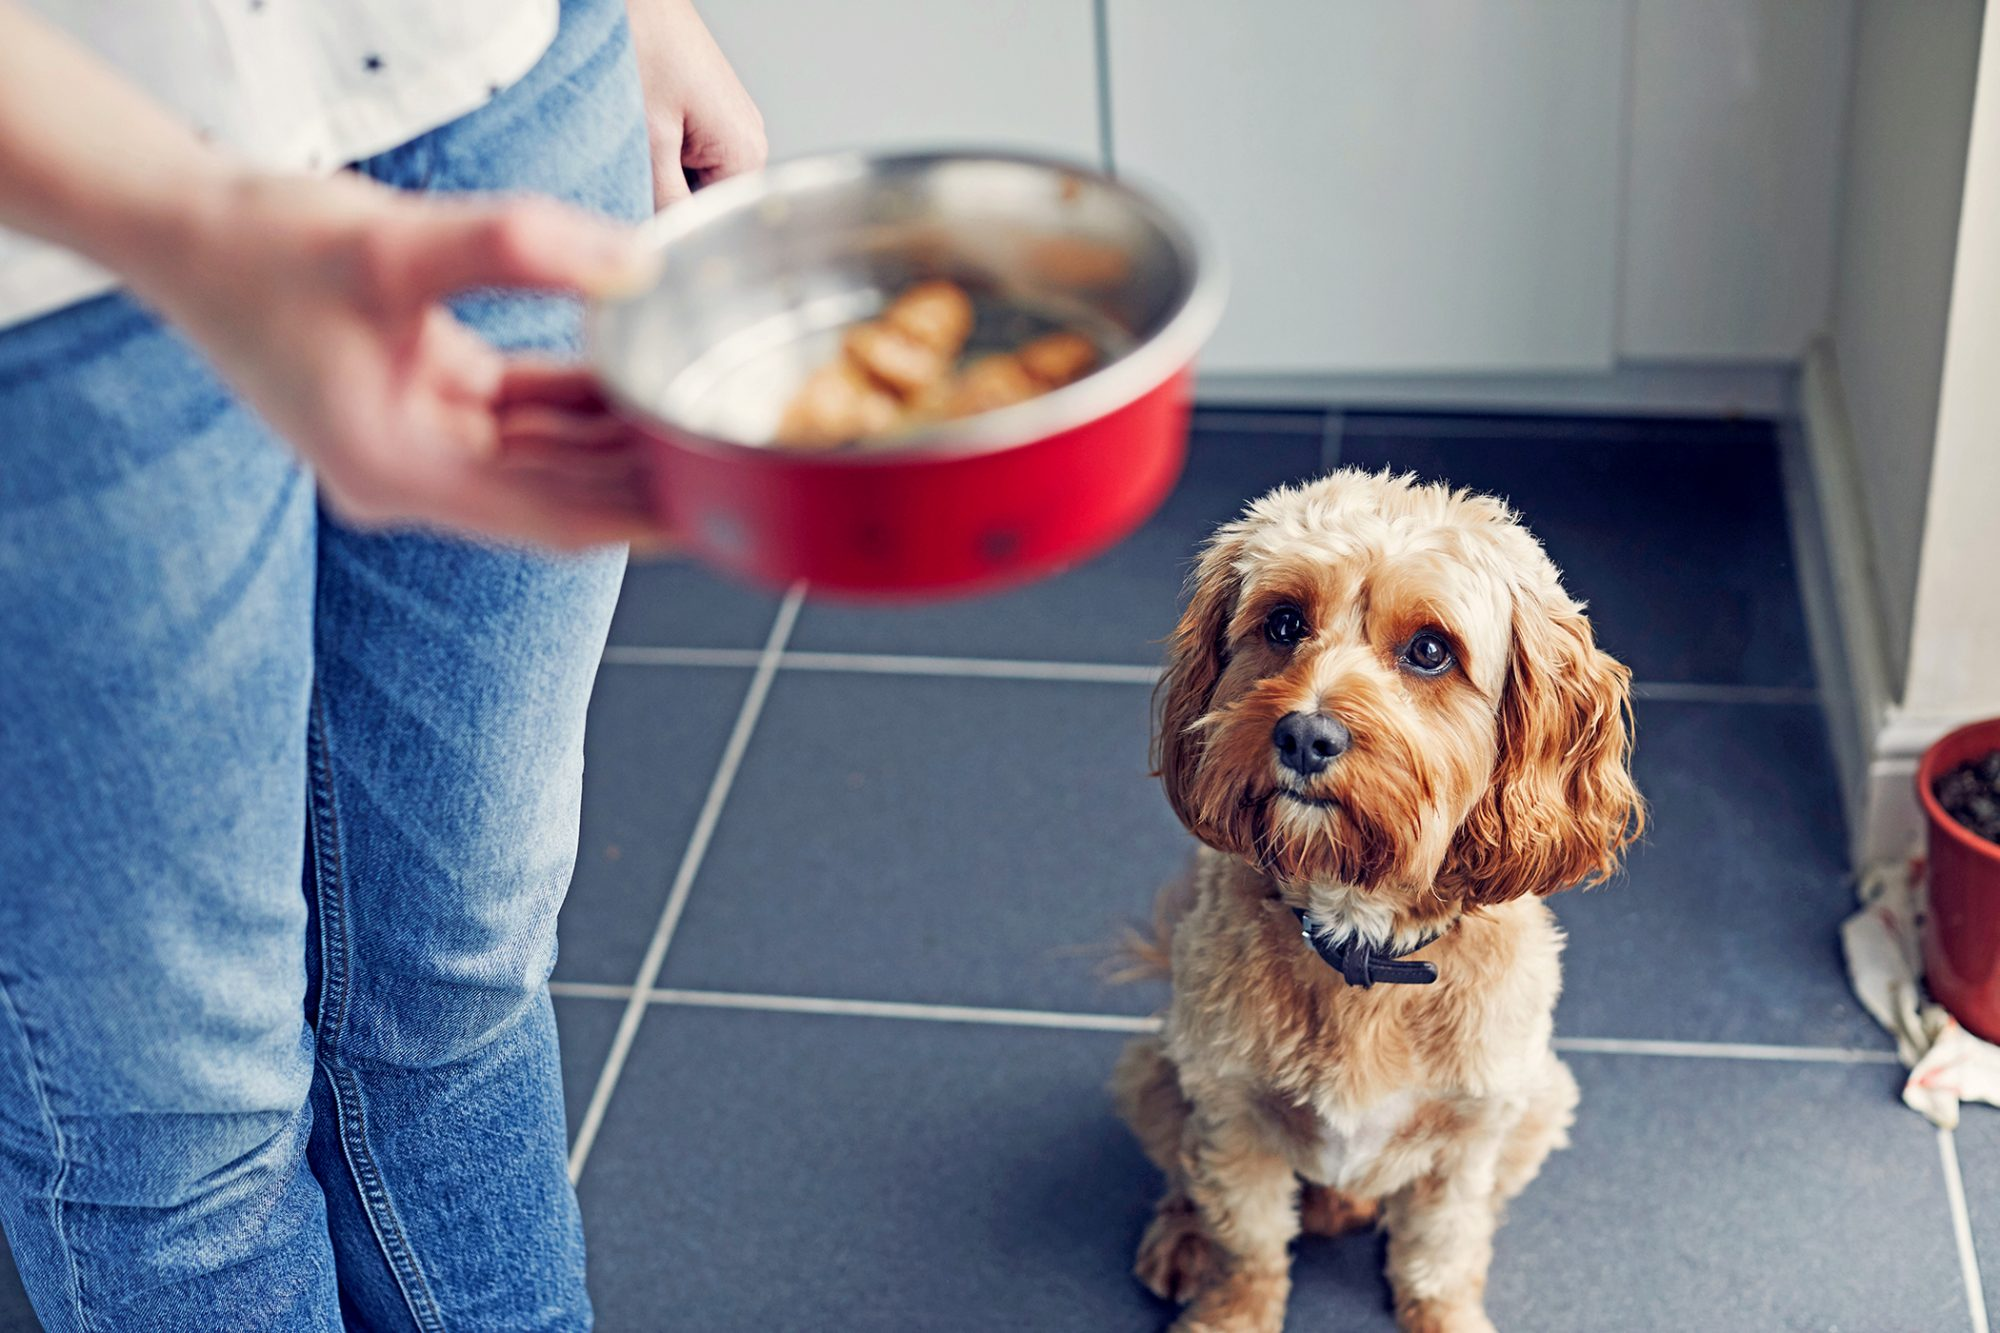 woman handing dog a bowl of dog food